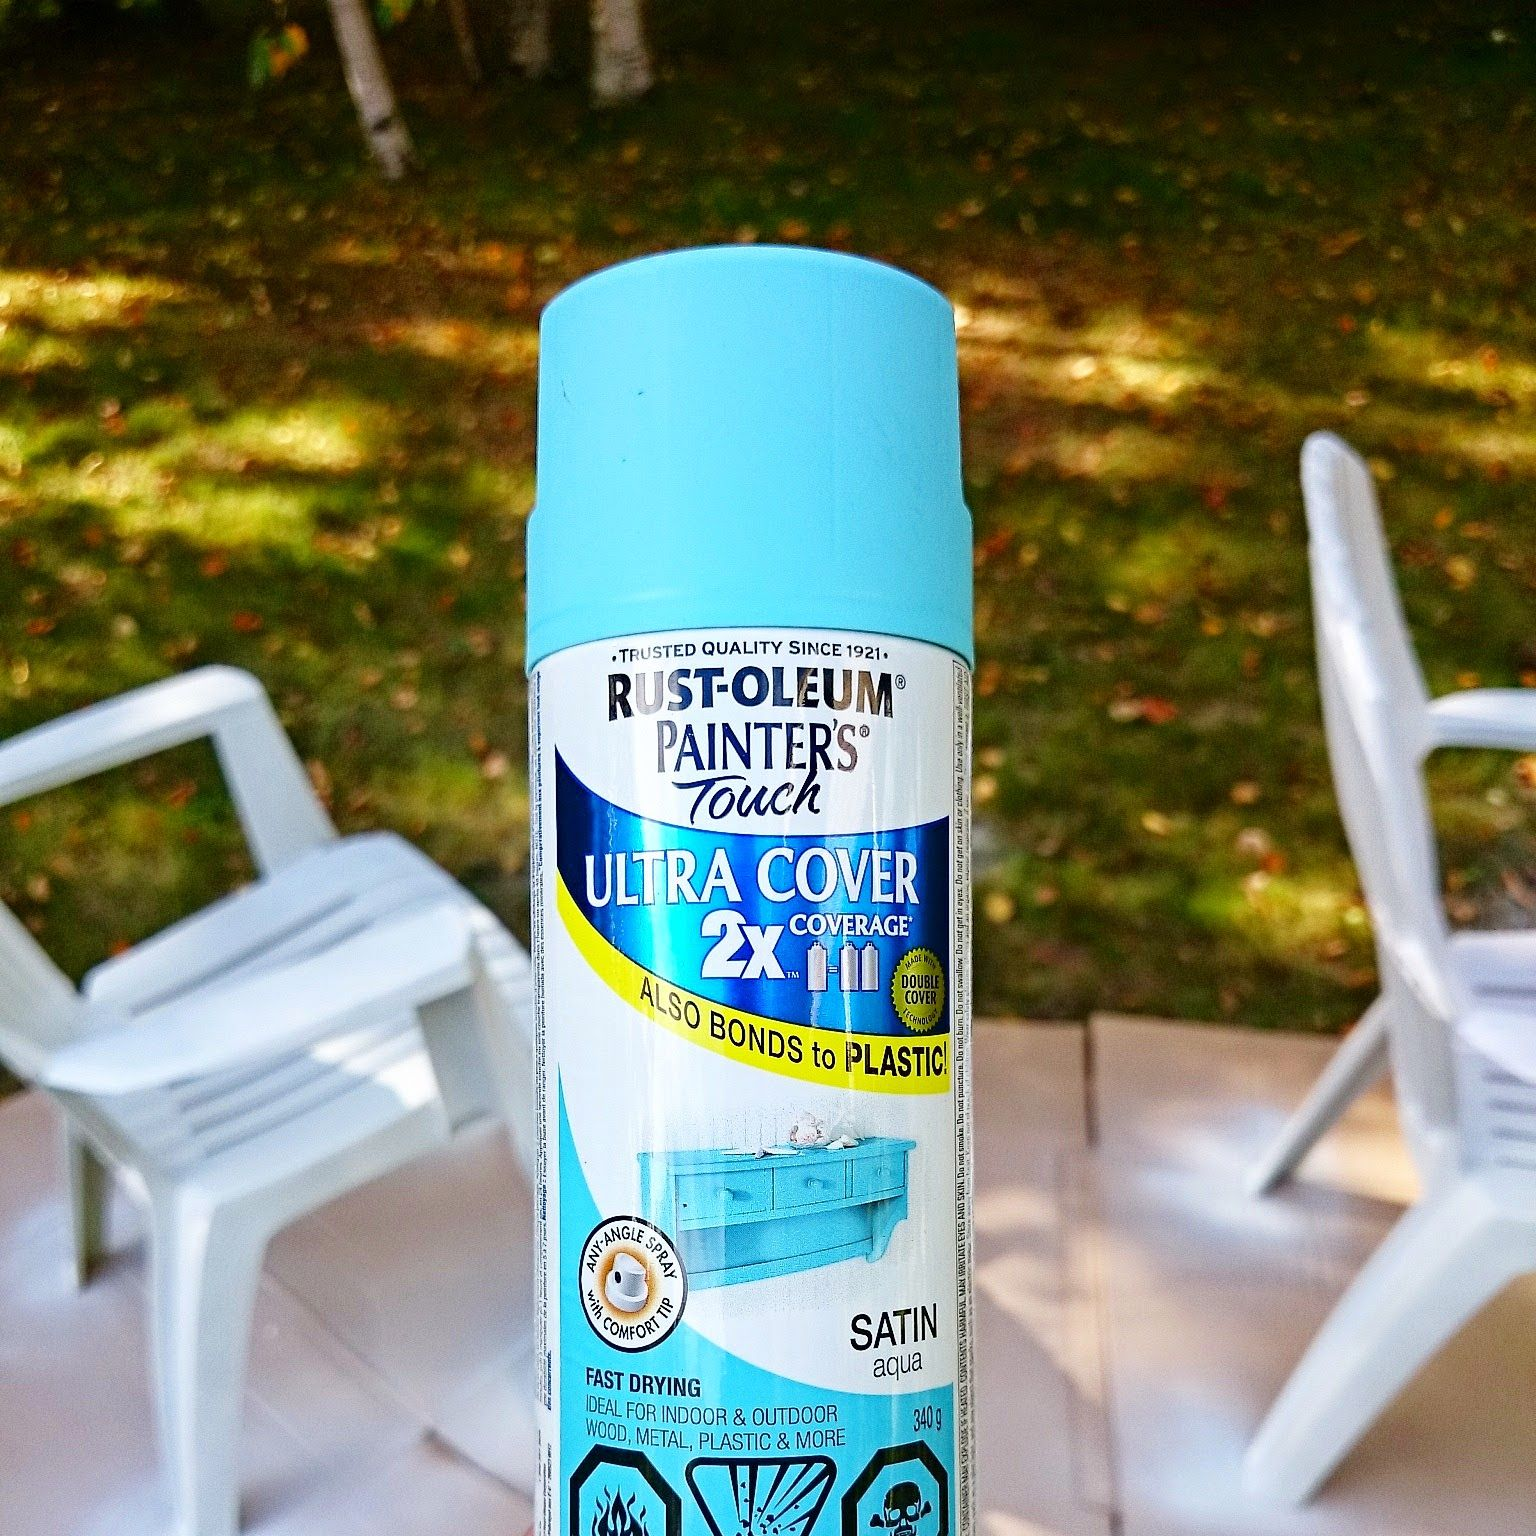 How To Spray Paint Plastic Lawn Chairs Painting Plastic Chairs Painting Plastic Spray Painting Outdoor Furniture